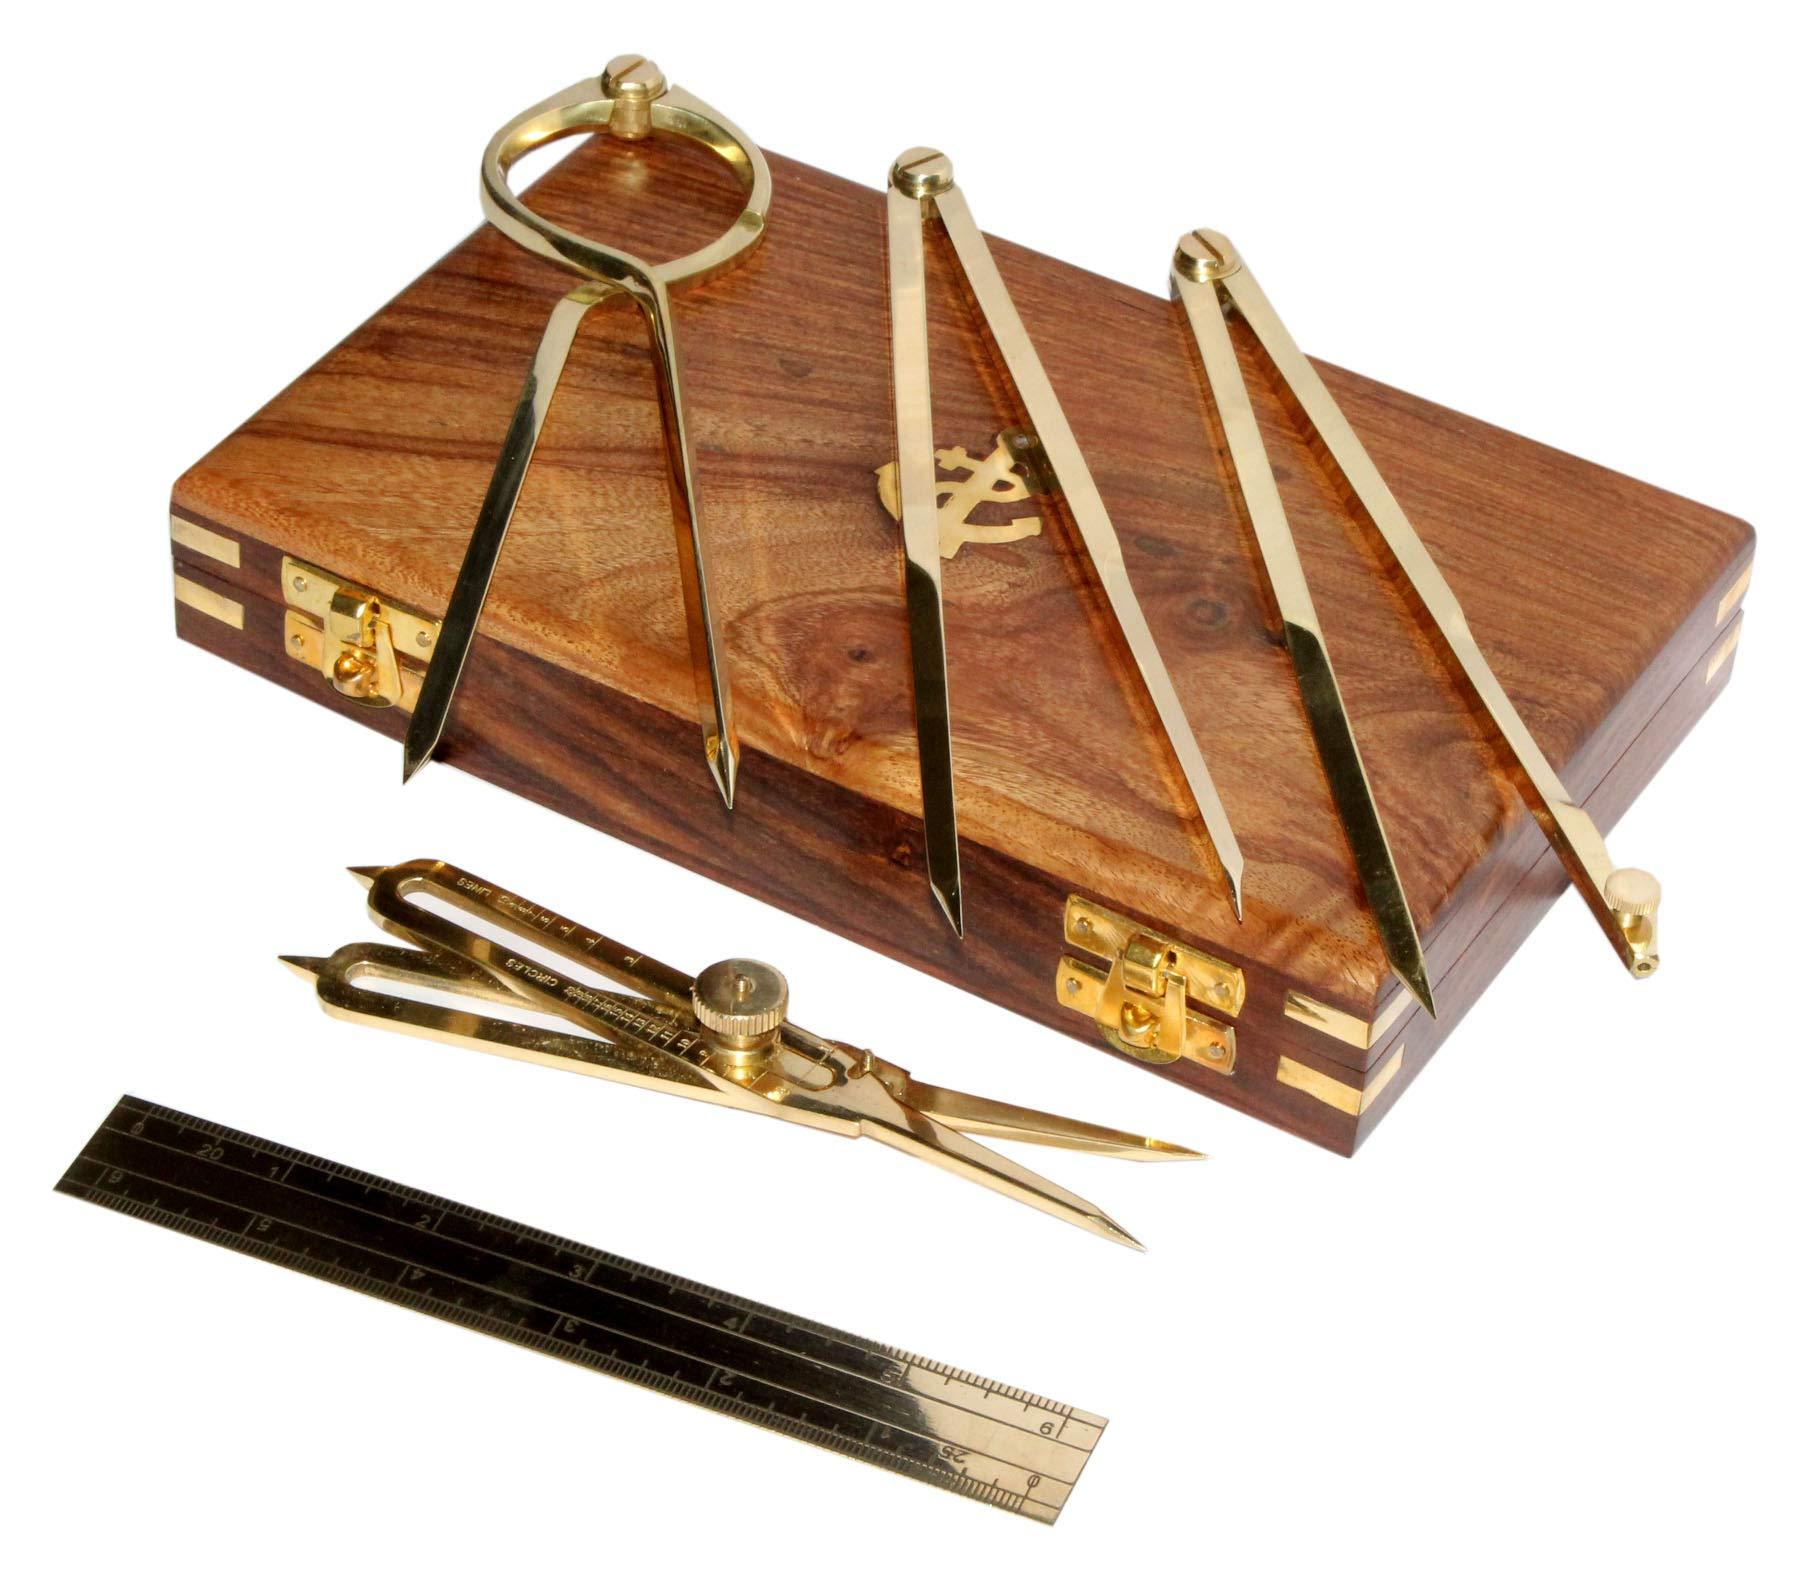 Proportional Divider Set of 5, Full Brass dividers with Executive Wooden Box, Single Handed 8'' Brass Navigational Dividers Compass Set for Maritime, Naval, Geometry and Drafting by 5MOONSUN5 (Image #1)